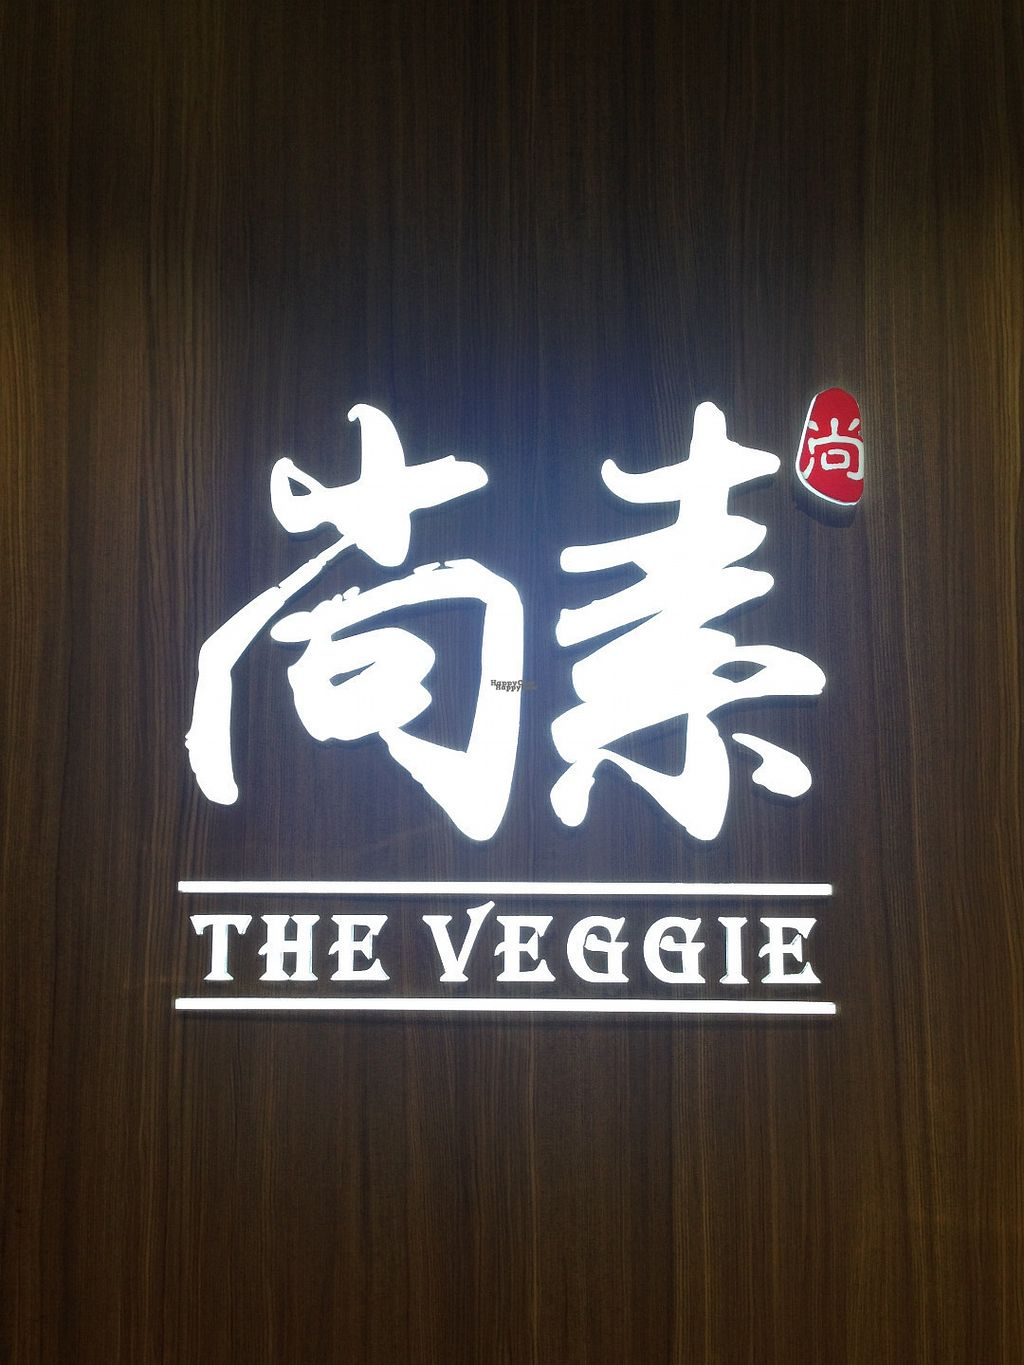 """Photo of The Veggie  by <a href=""""/members/profile/Stevie"""">Stevie</a> <br/>Shop sign <br/> September 5, 2016  - <a href='/contact/abuse/image/79669/173771'>Report</a>"""